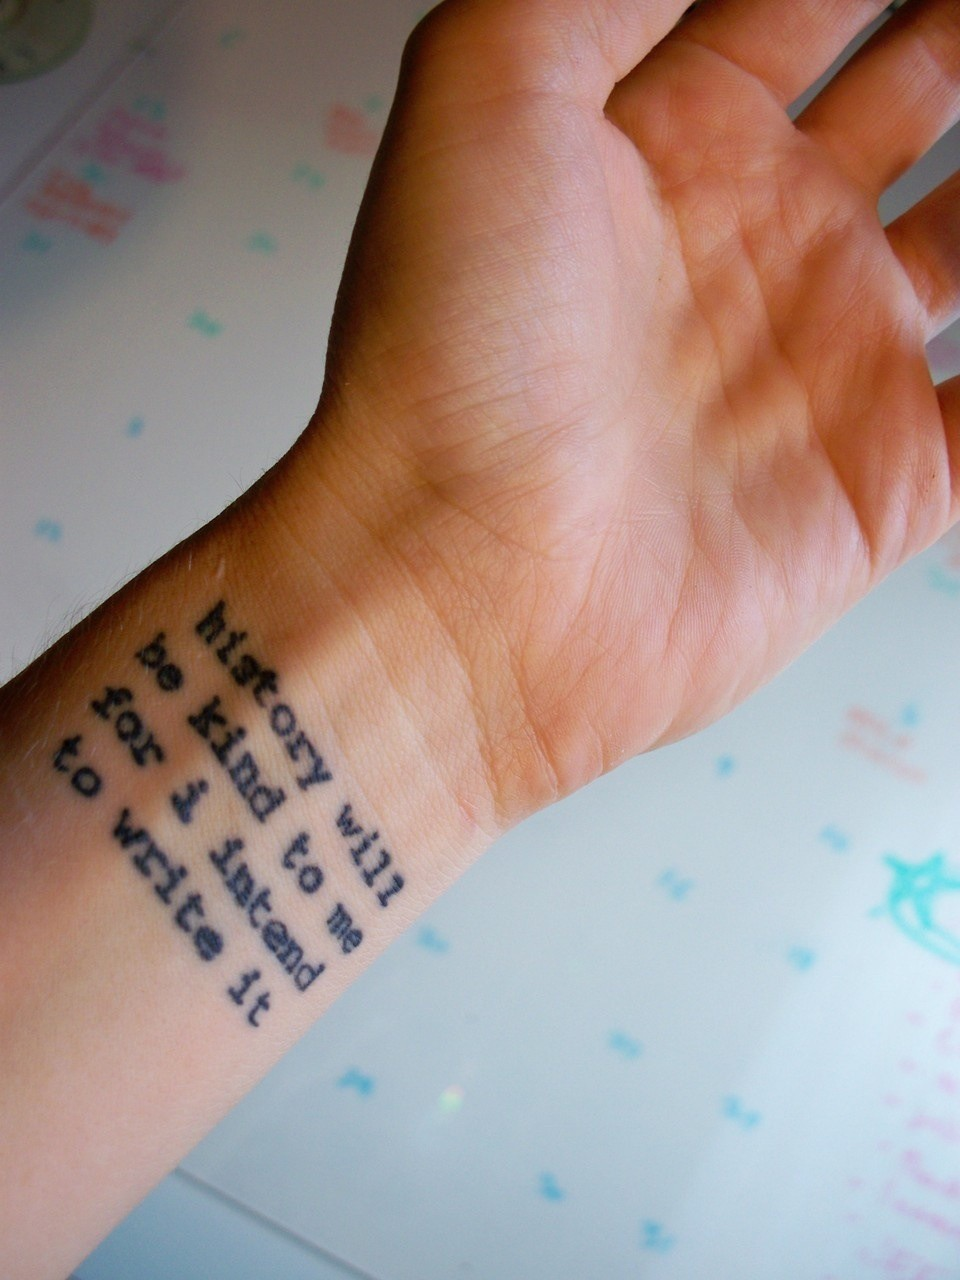 Drawing Lines On Your Wrist : Inspirational tattoos designs ideas and meaning